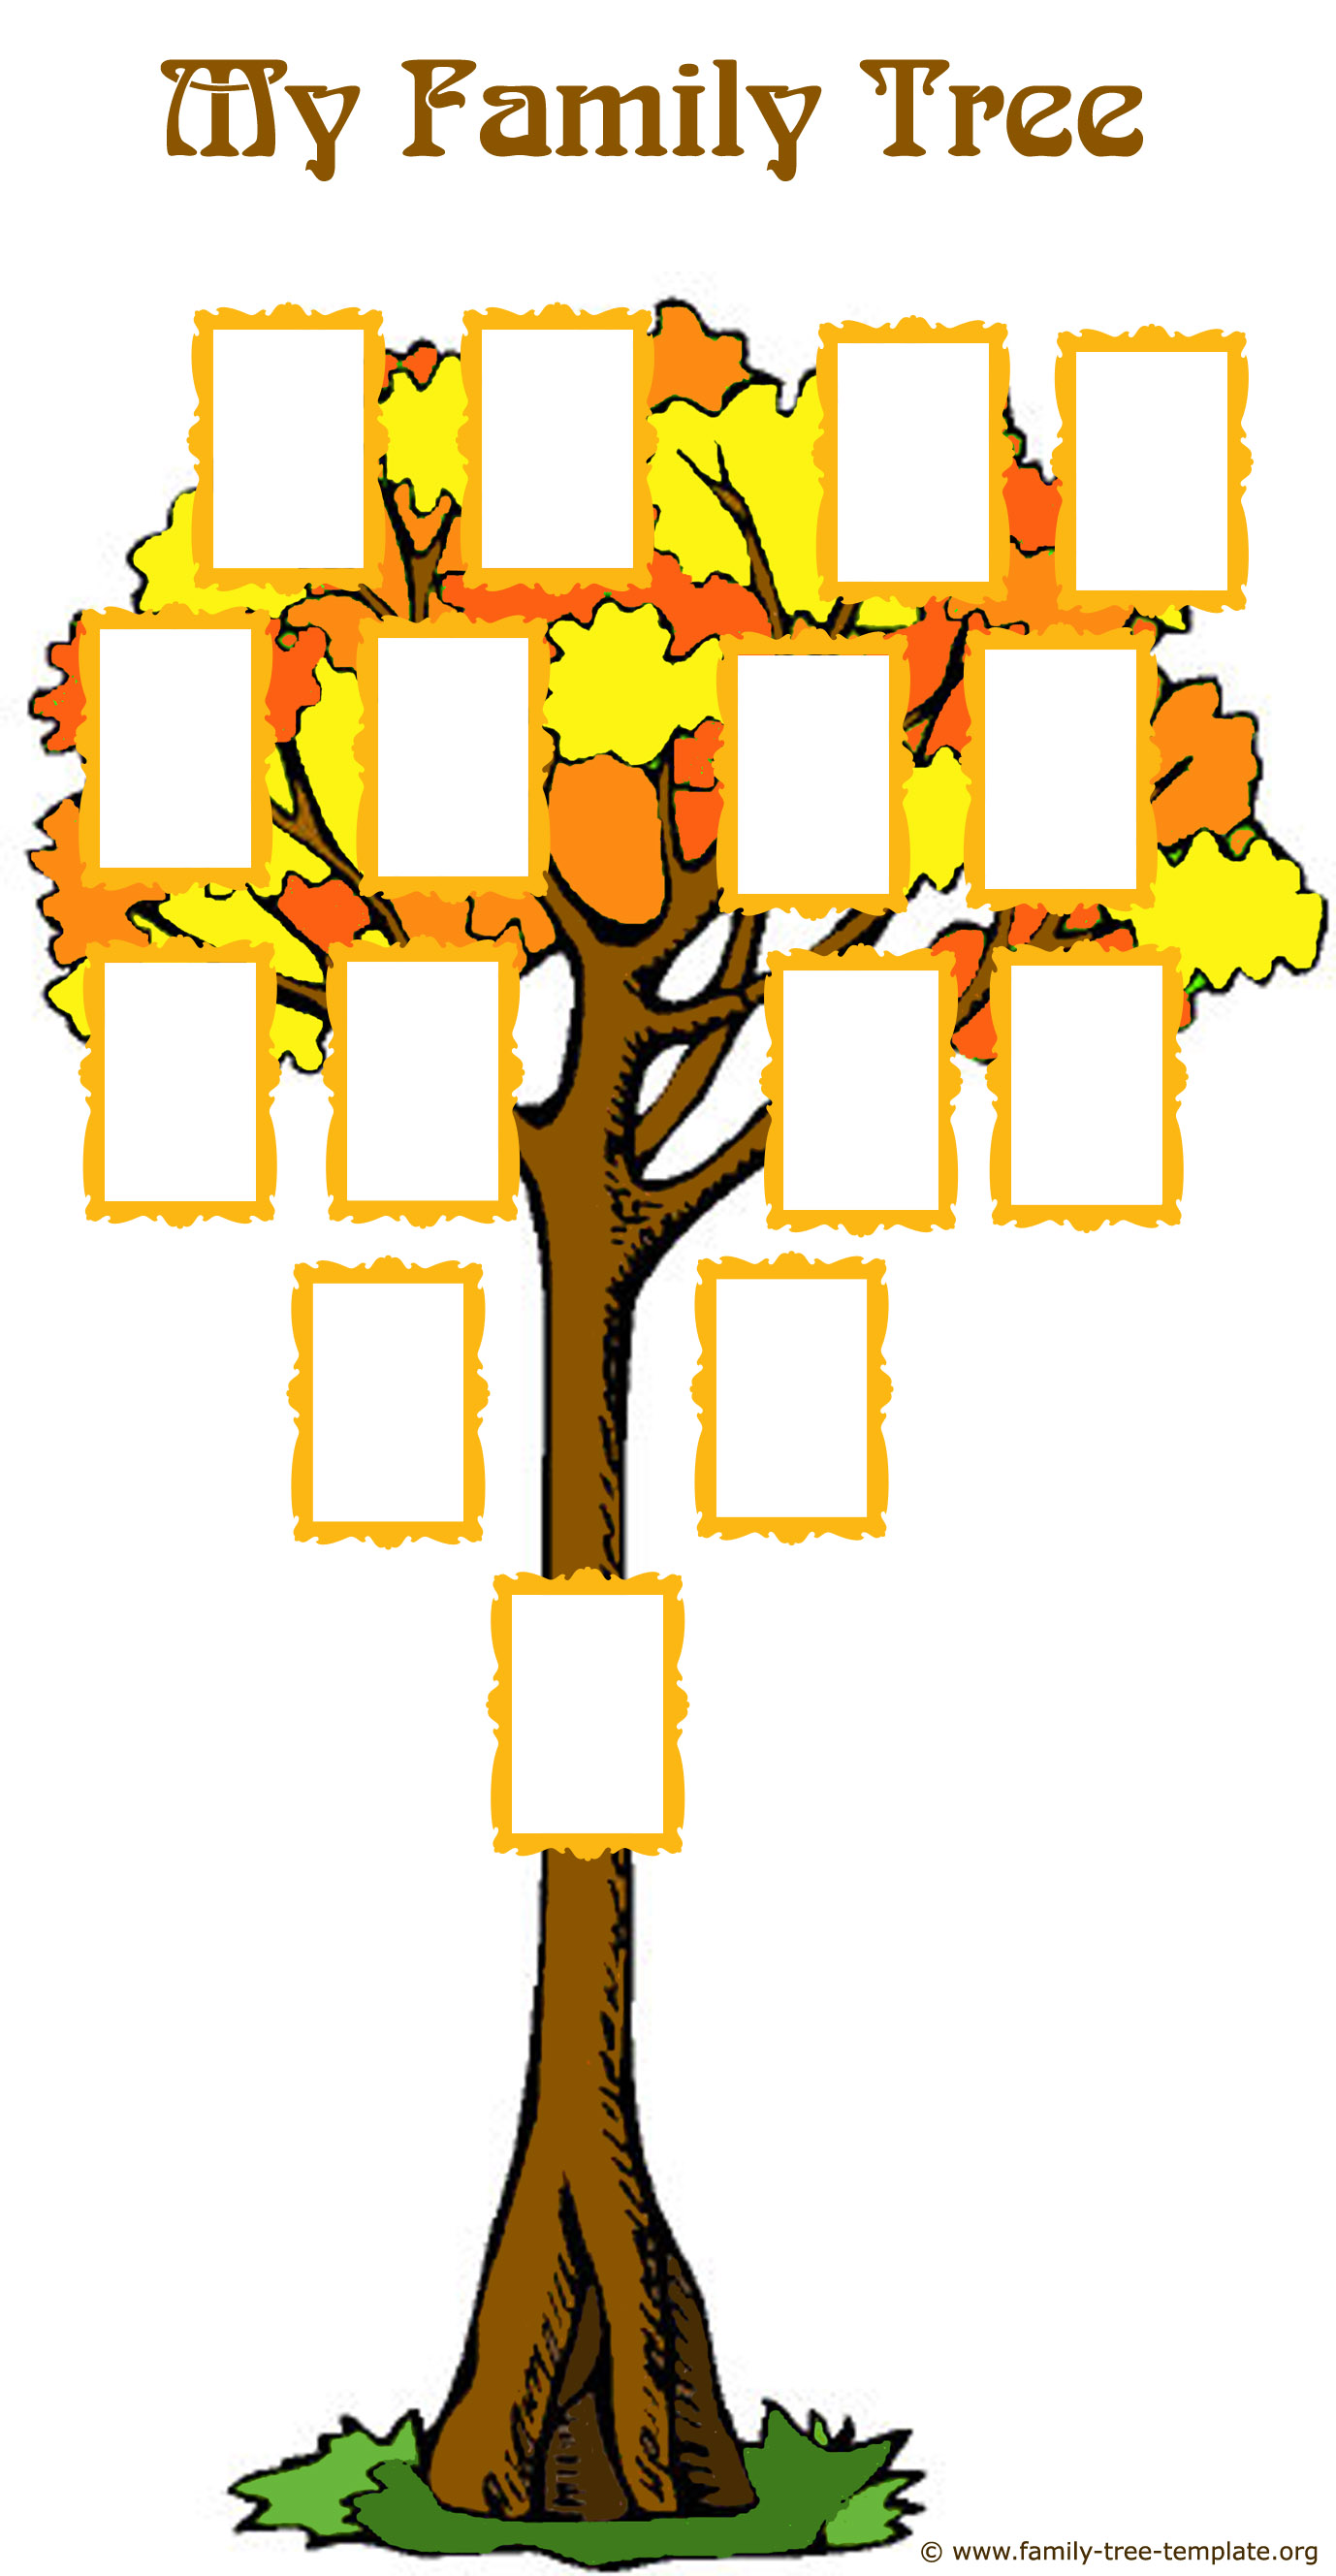 Great family tree template for kids with picture frames for family members: draw, glue or write.